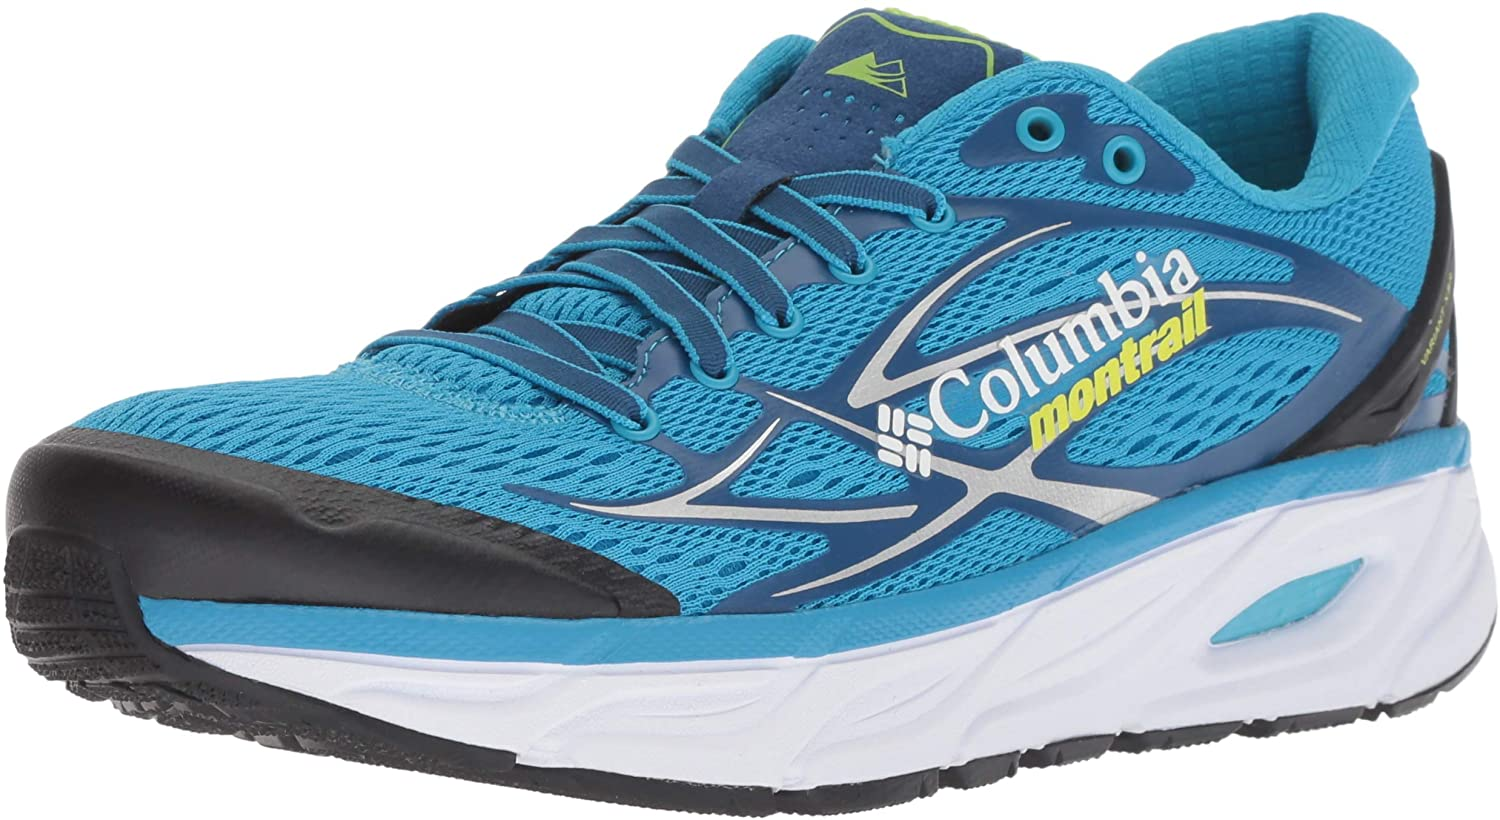 Columbia Mens Variant X.S.R. Trail Running Shoe, Blue chill, Fission, 11.5 D US